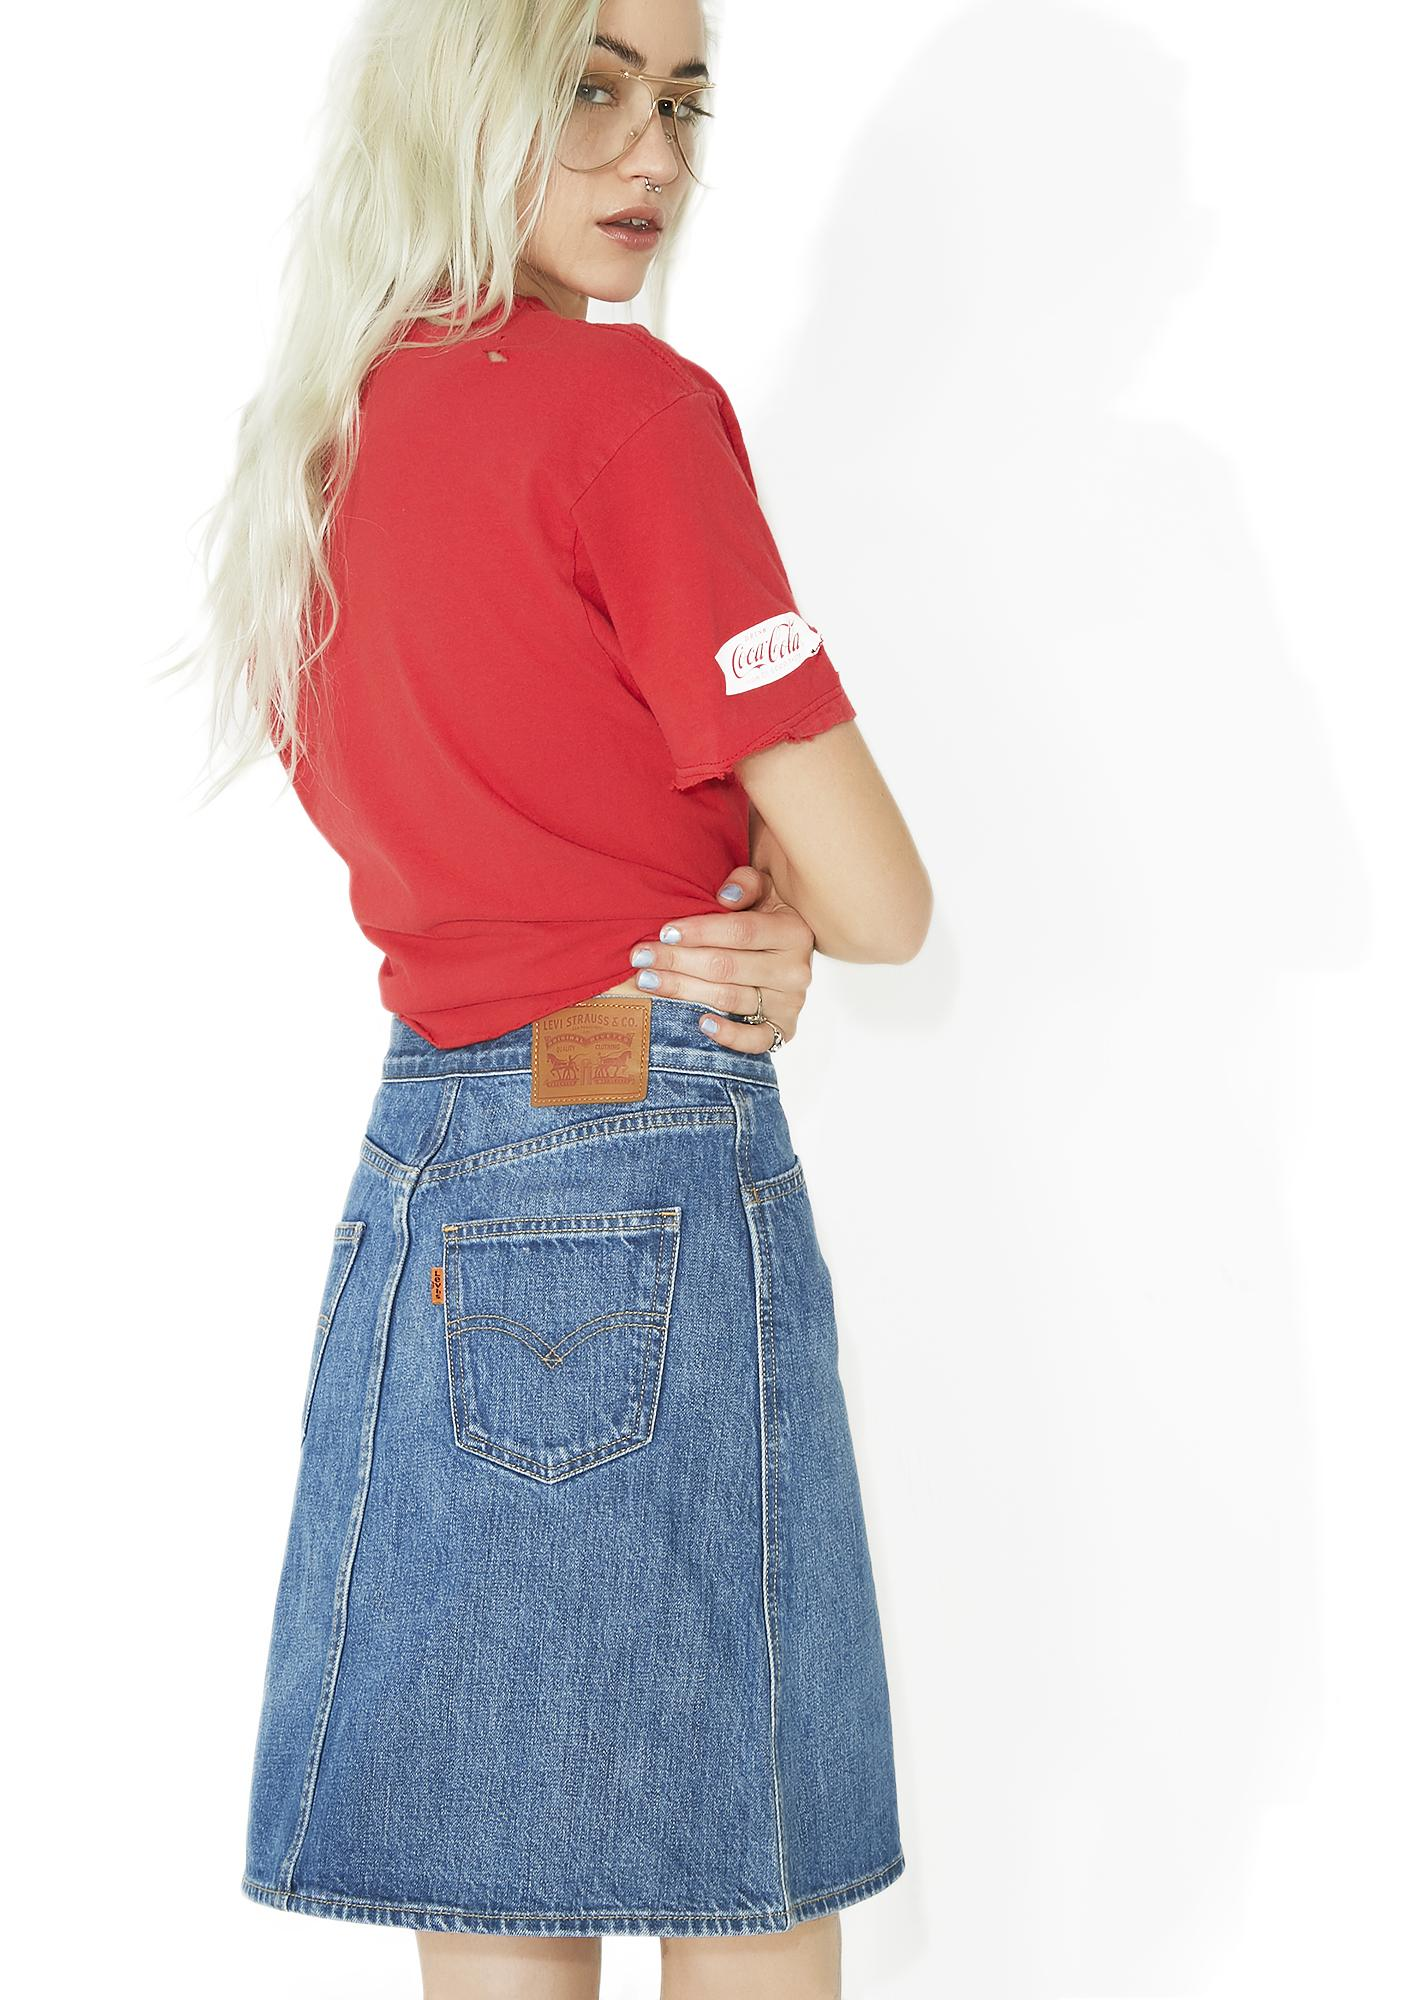 Levis Orange Tab Zip Front Skirt